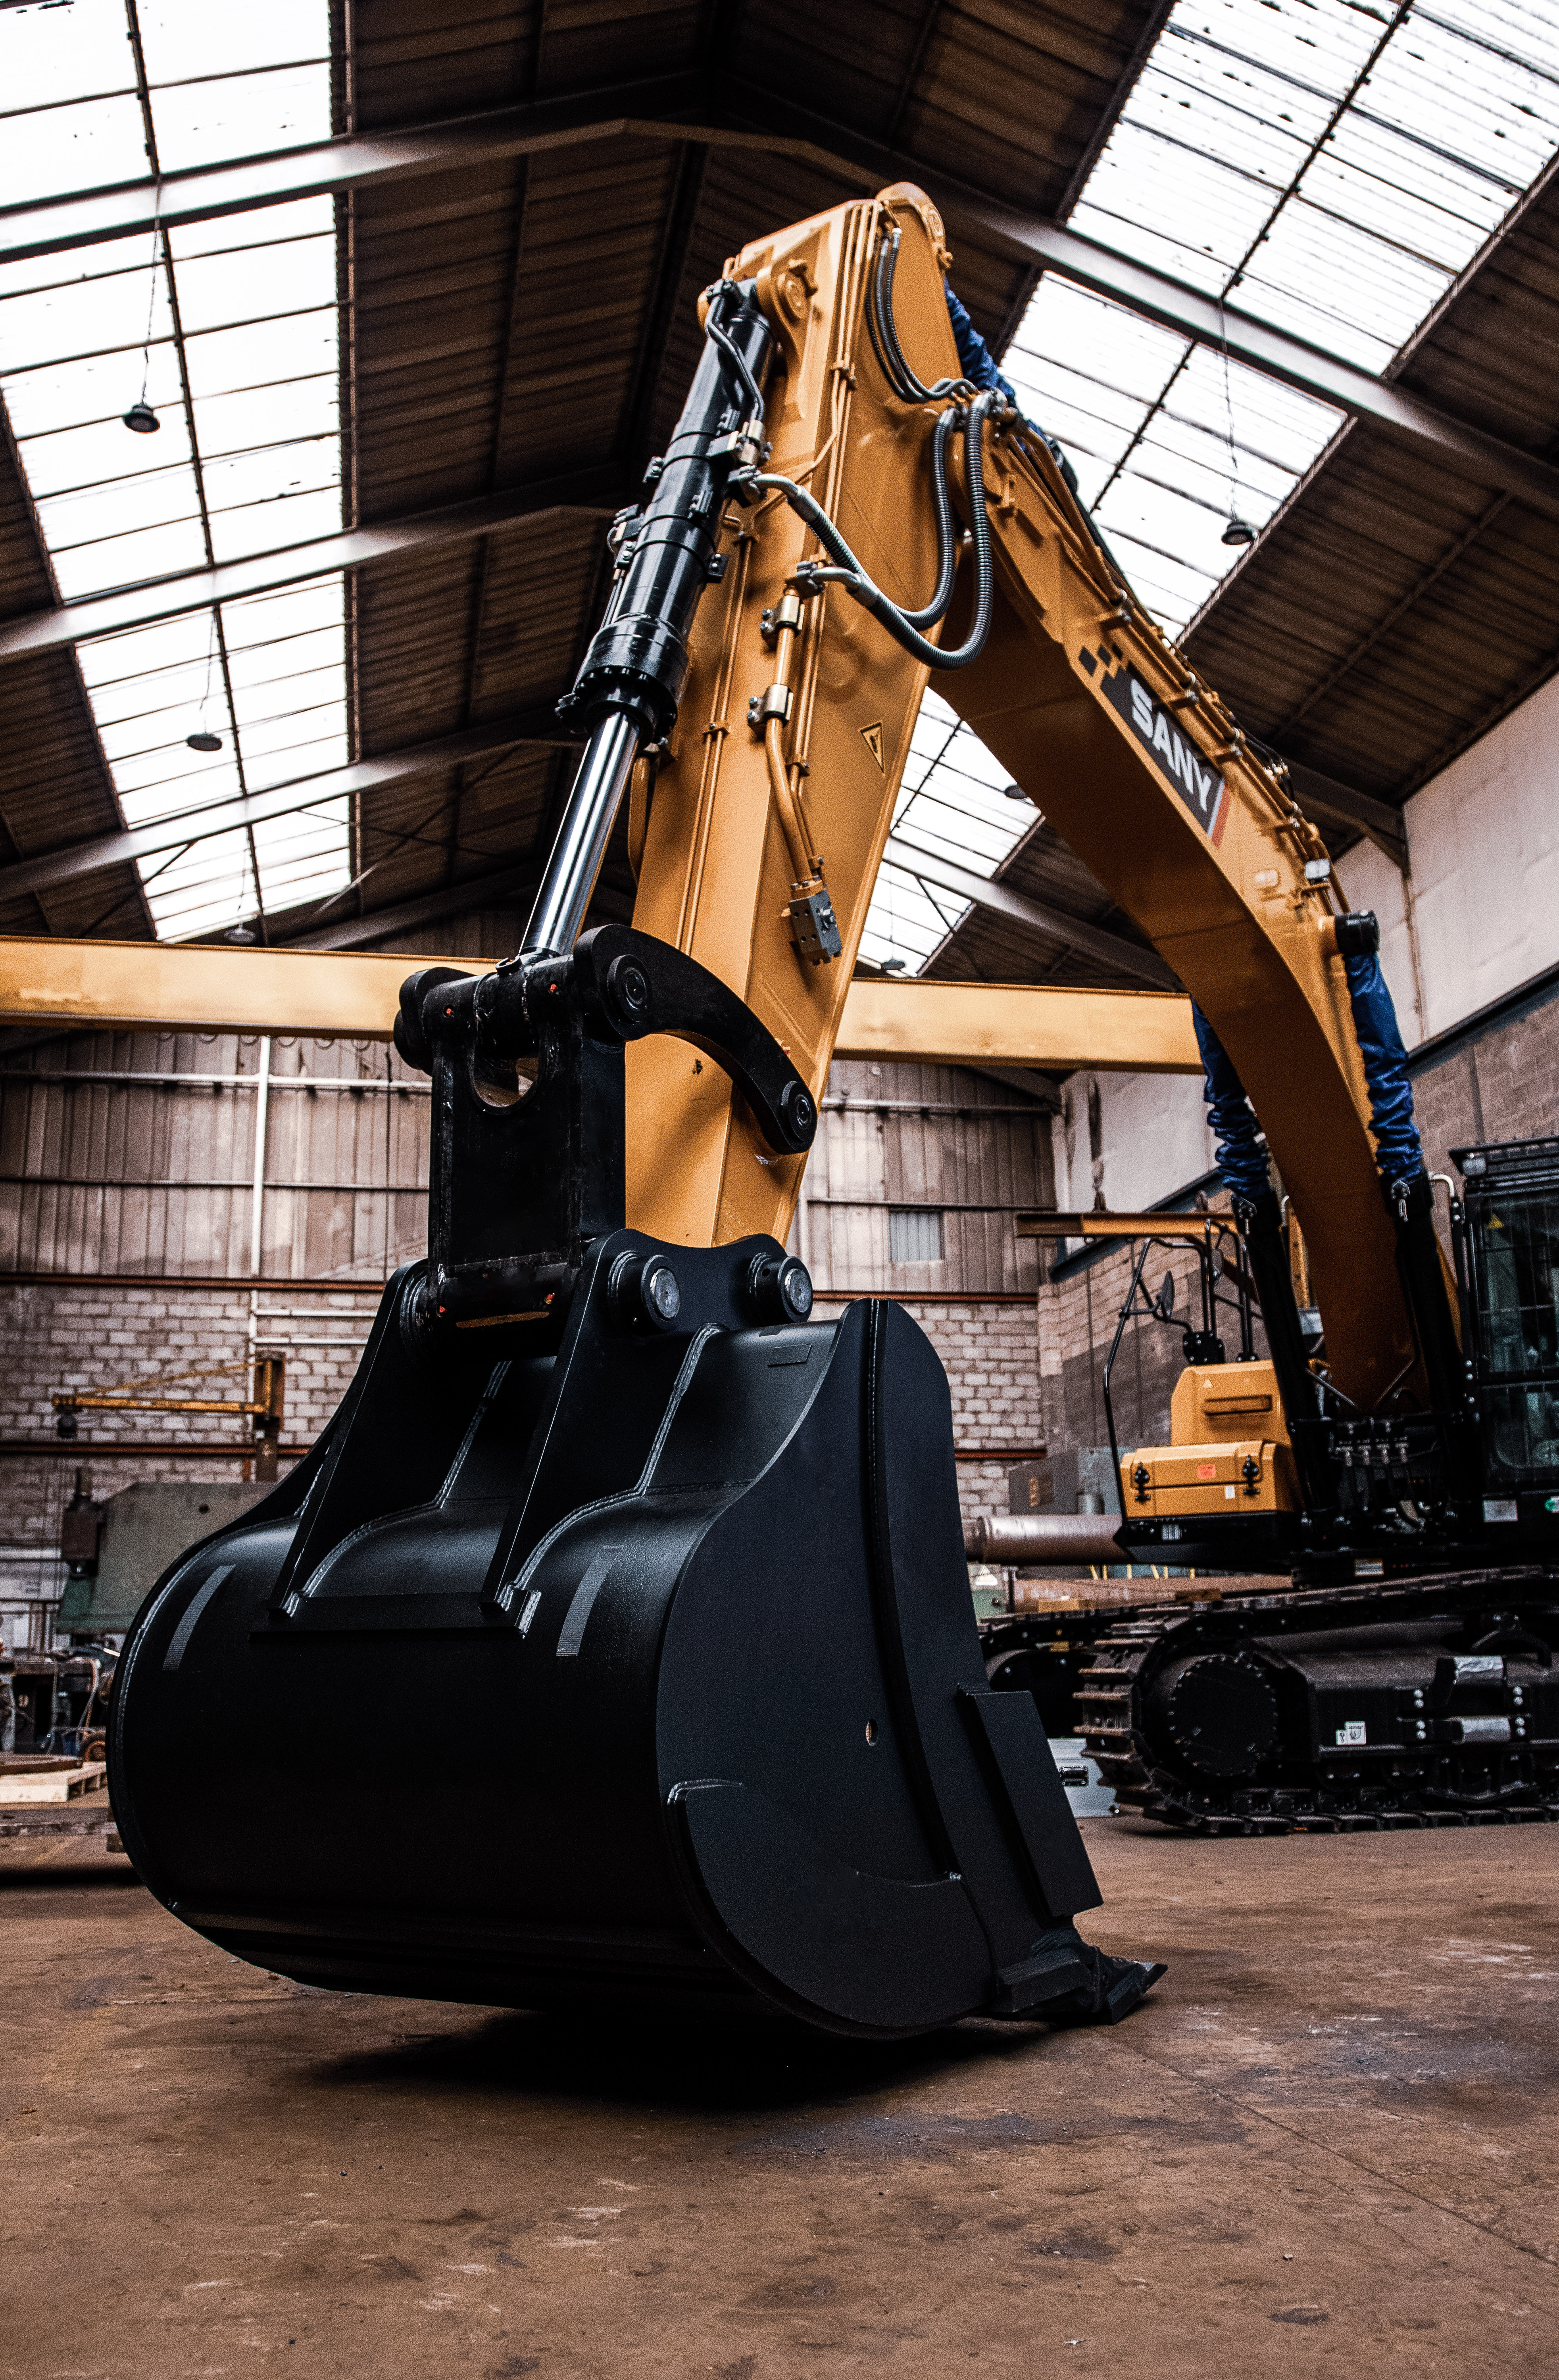 THE UK'S FIRST SANY 50T EXCAVATOR SET TO START WORK